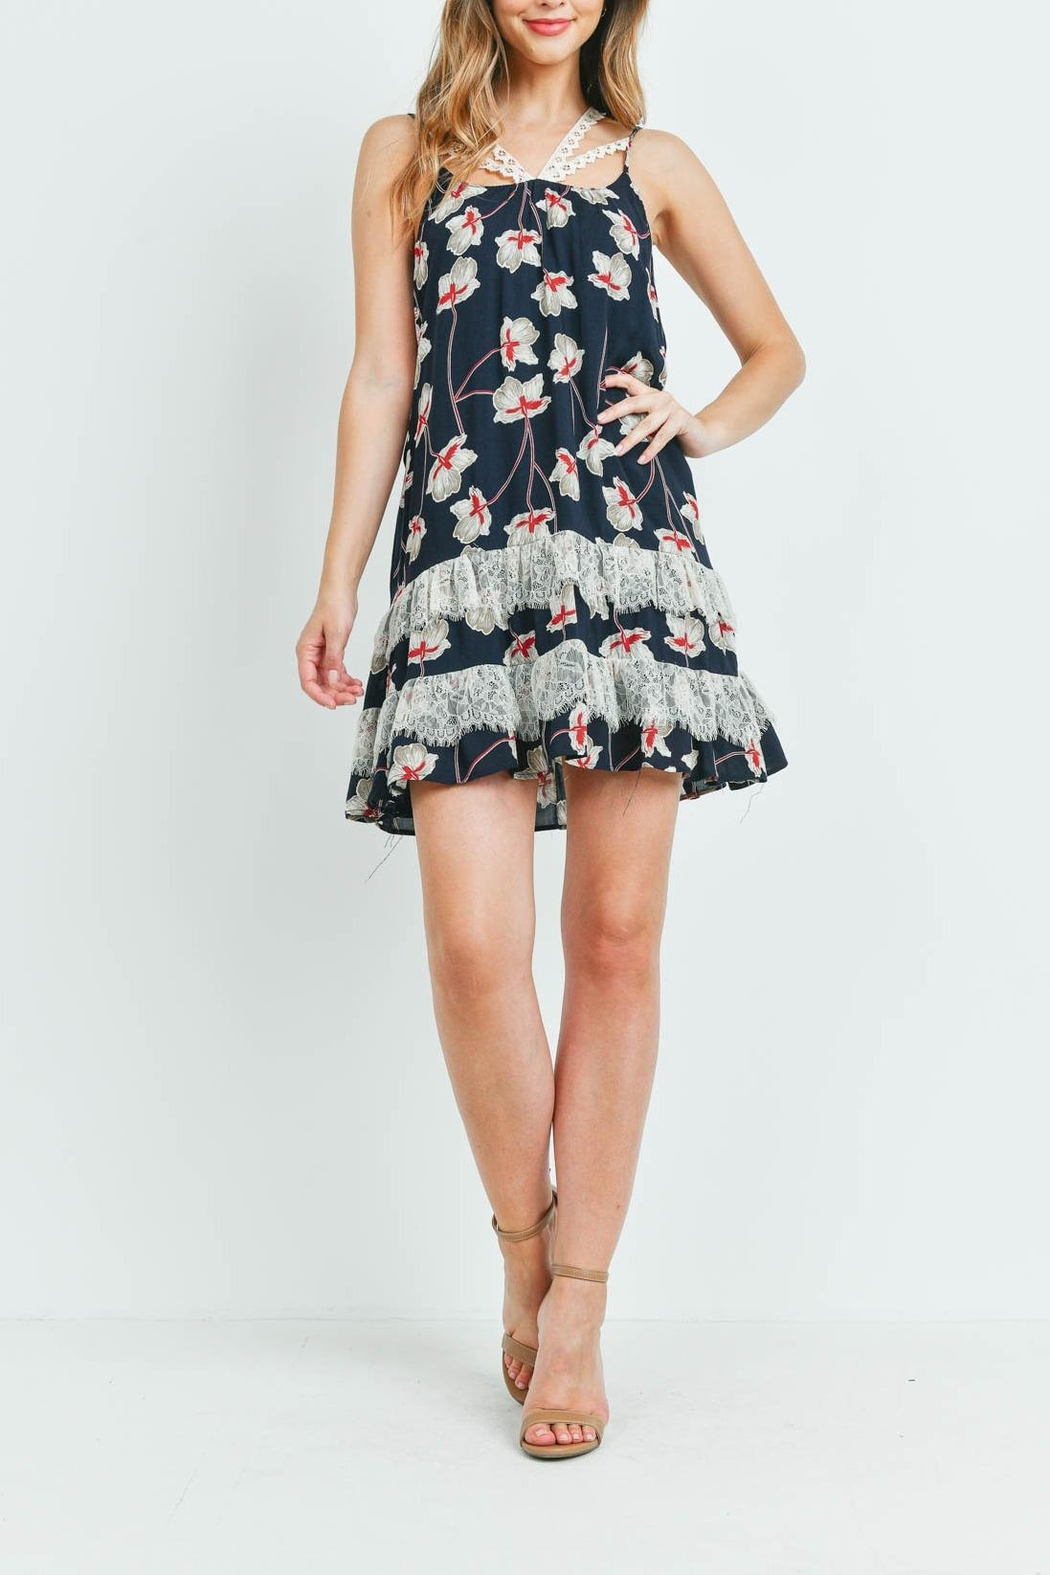 Riah Fashion Navy-With-Flower-Print-Dress - Back Cropped Image